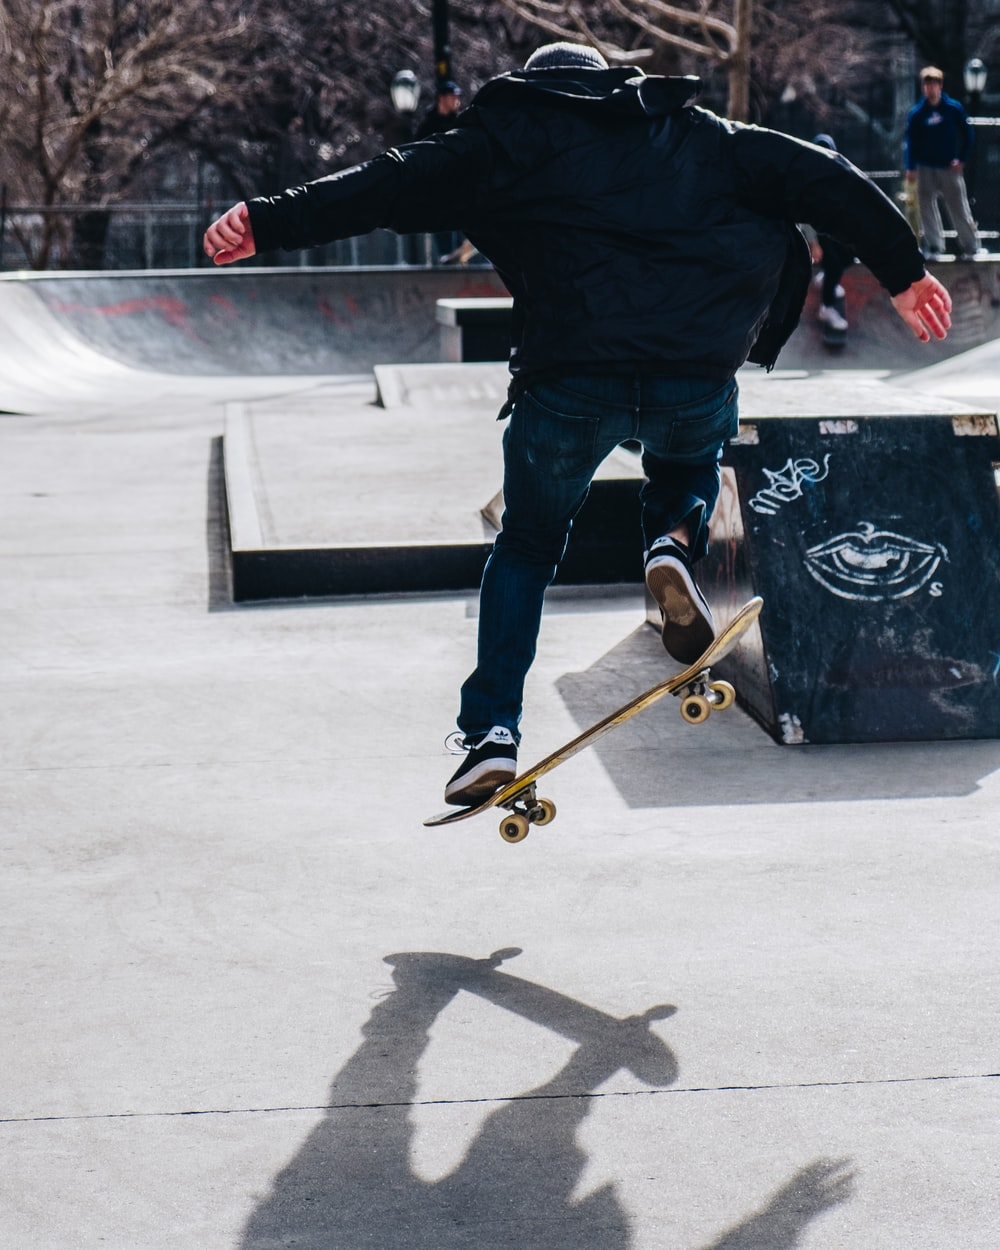 man riding on skateboard and performing tricks